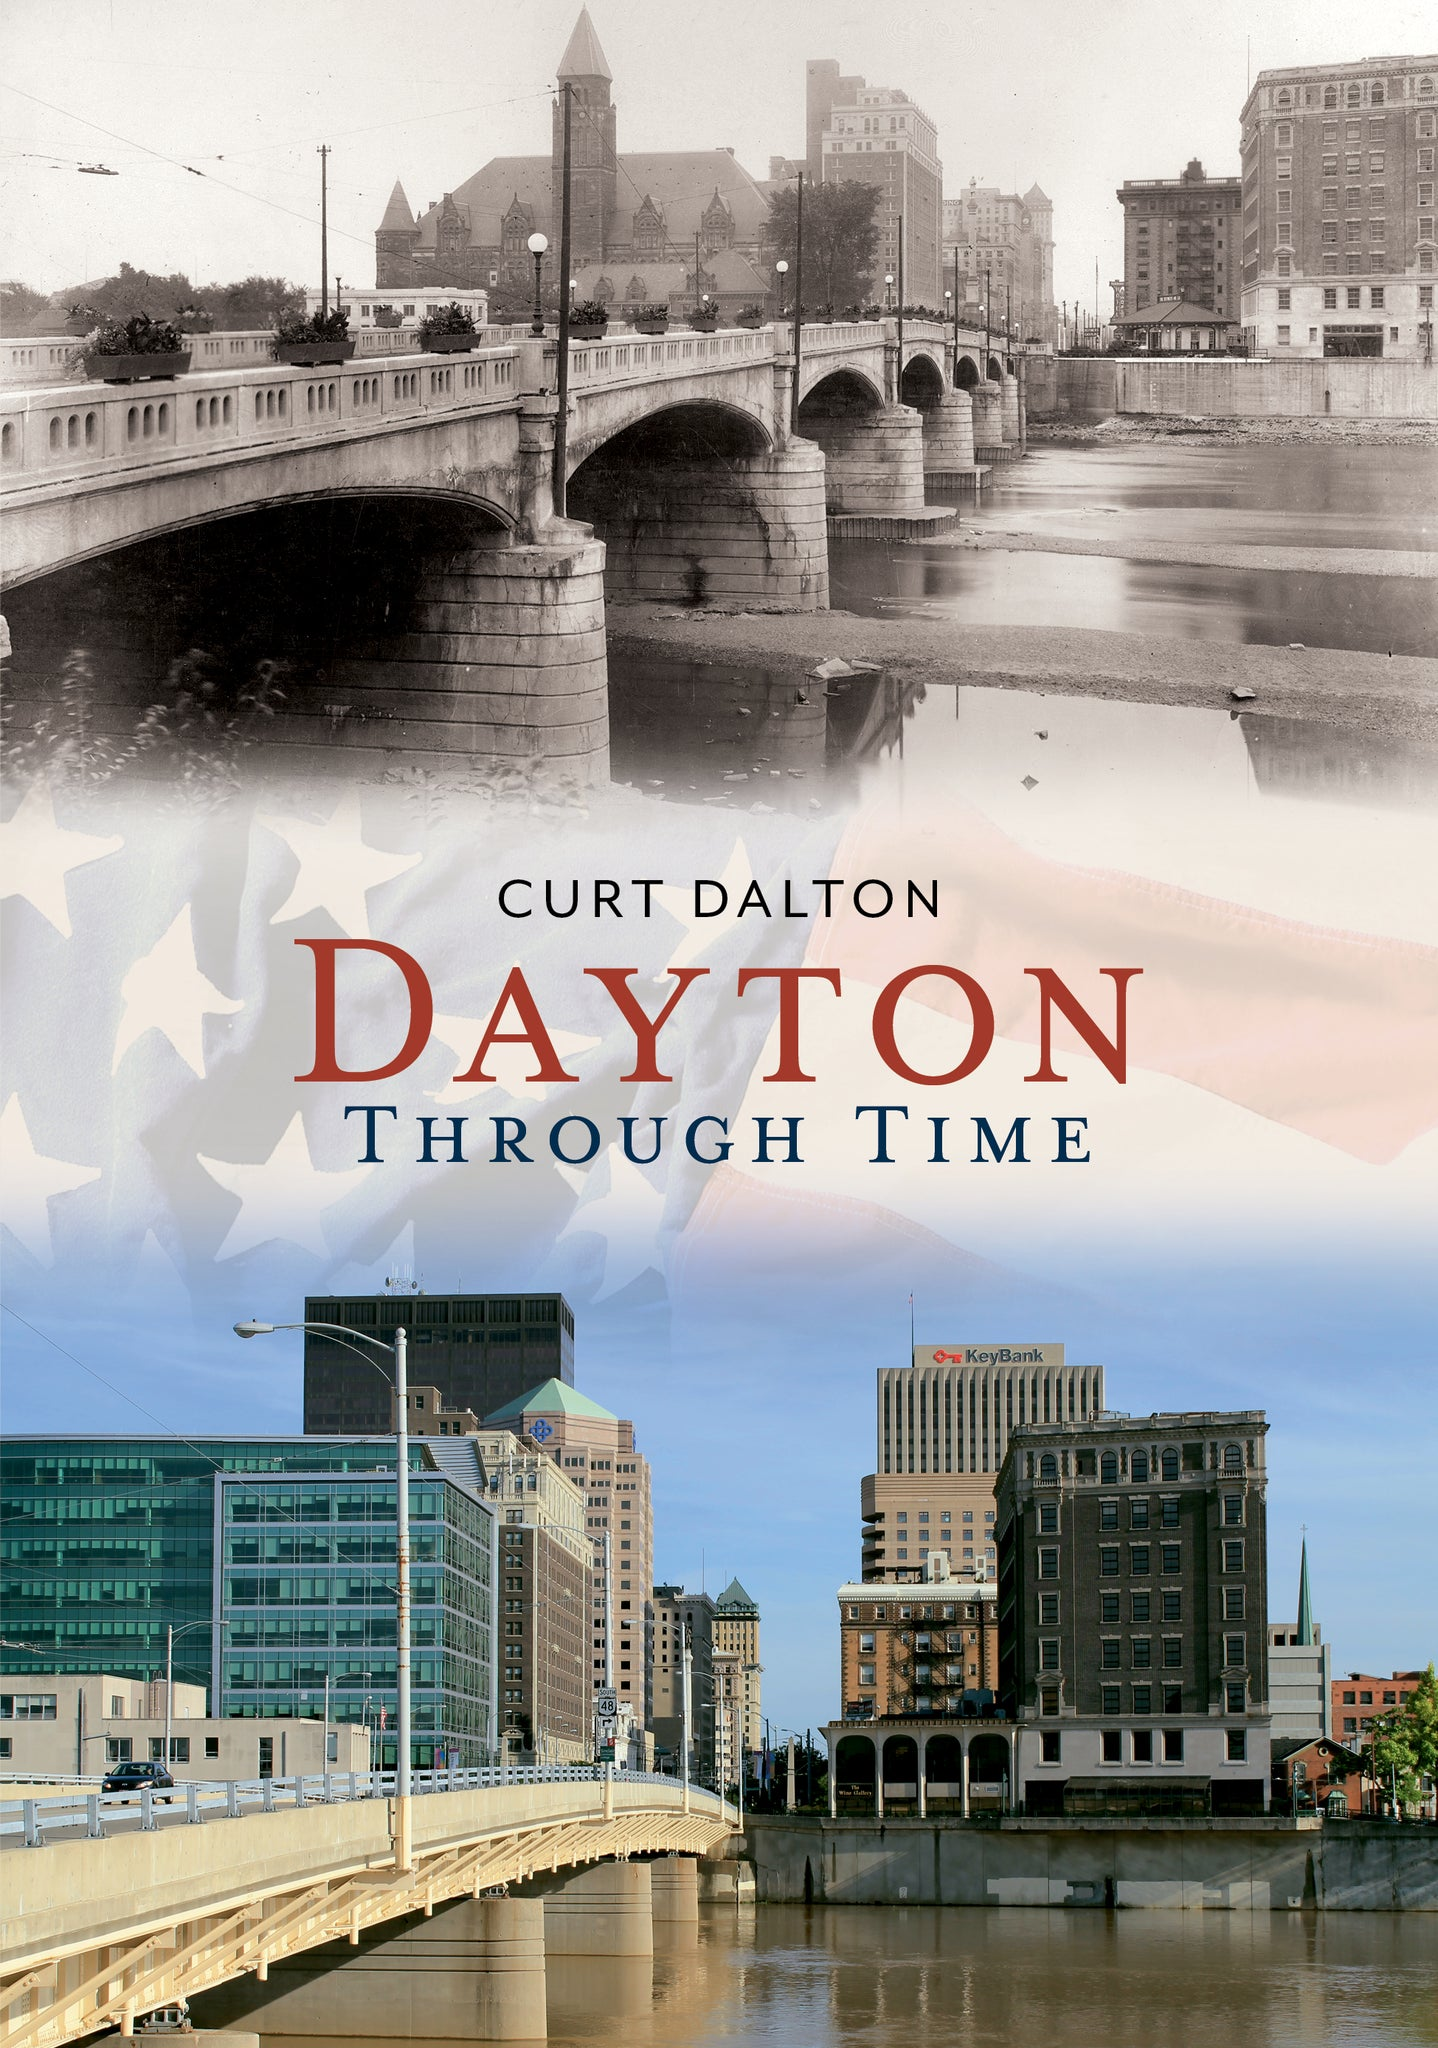 Dayton Through Time - published by America Through Time